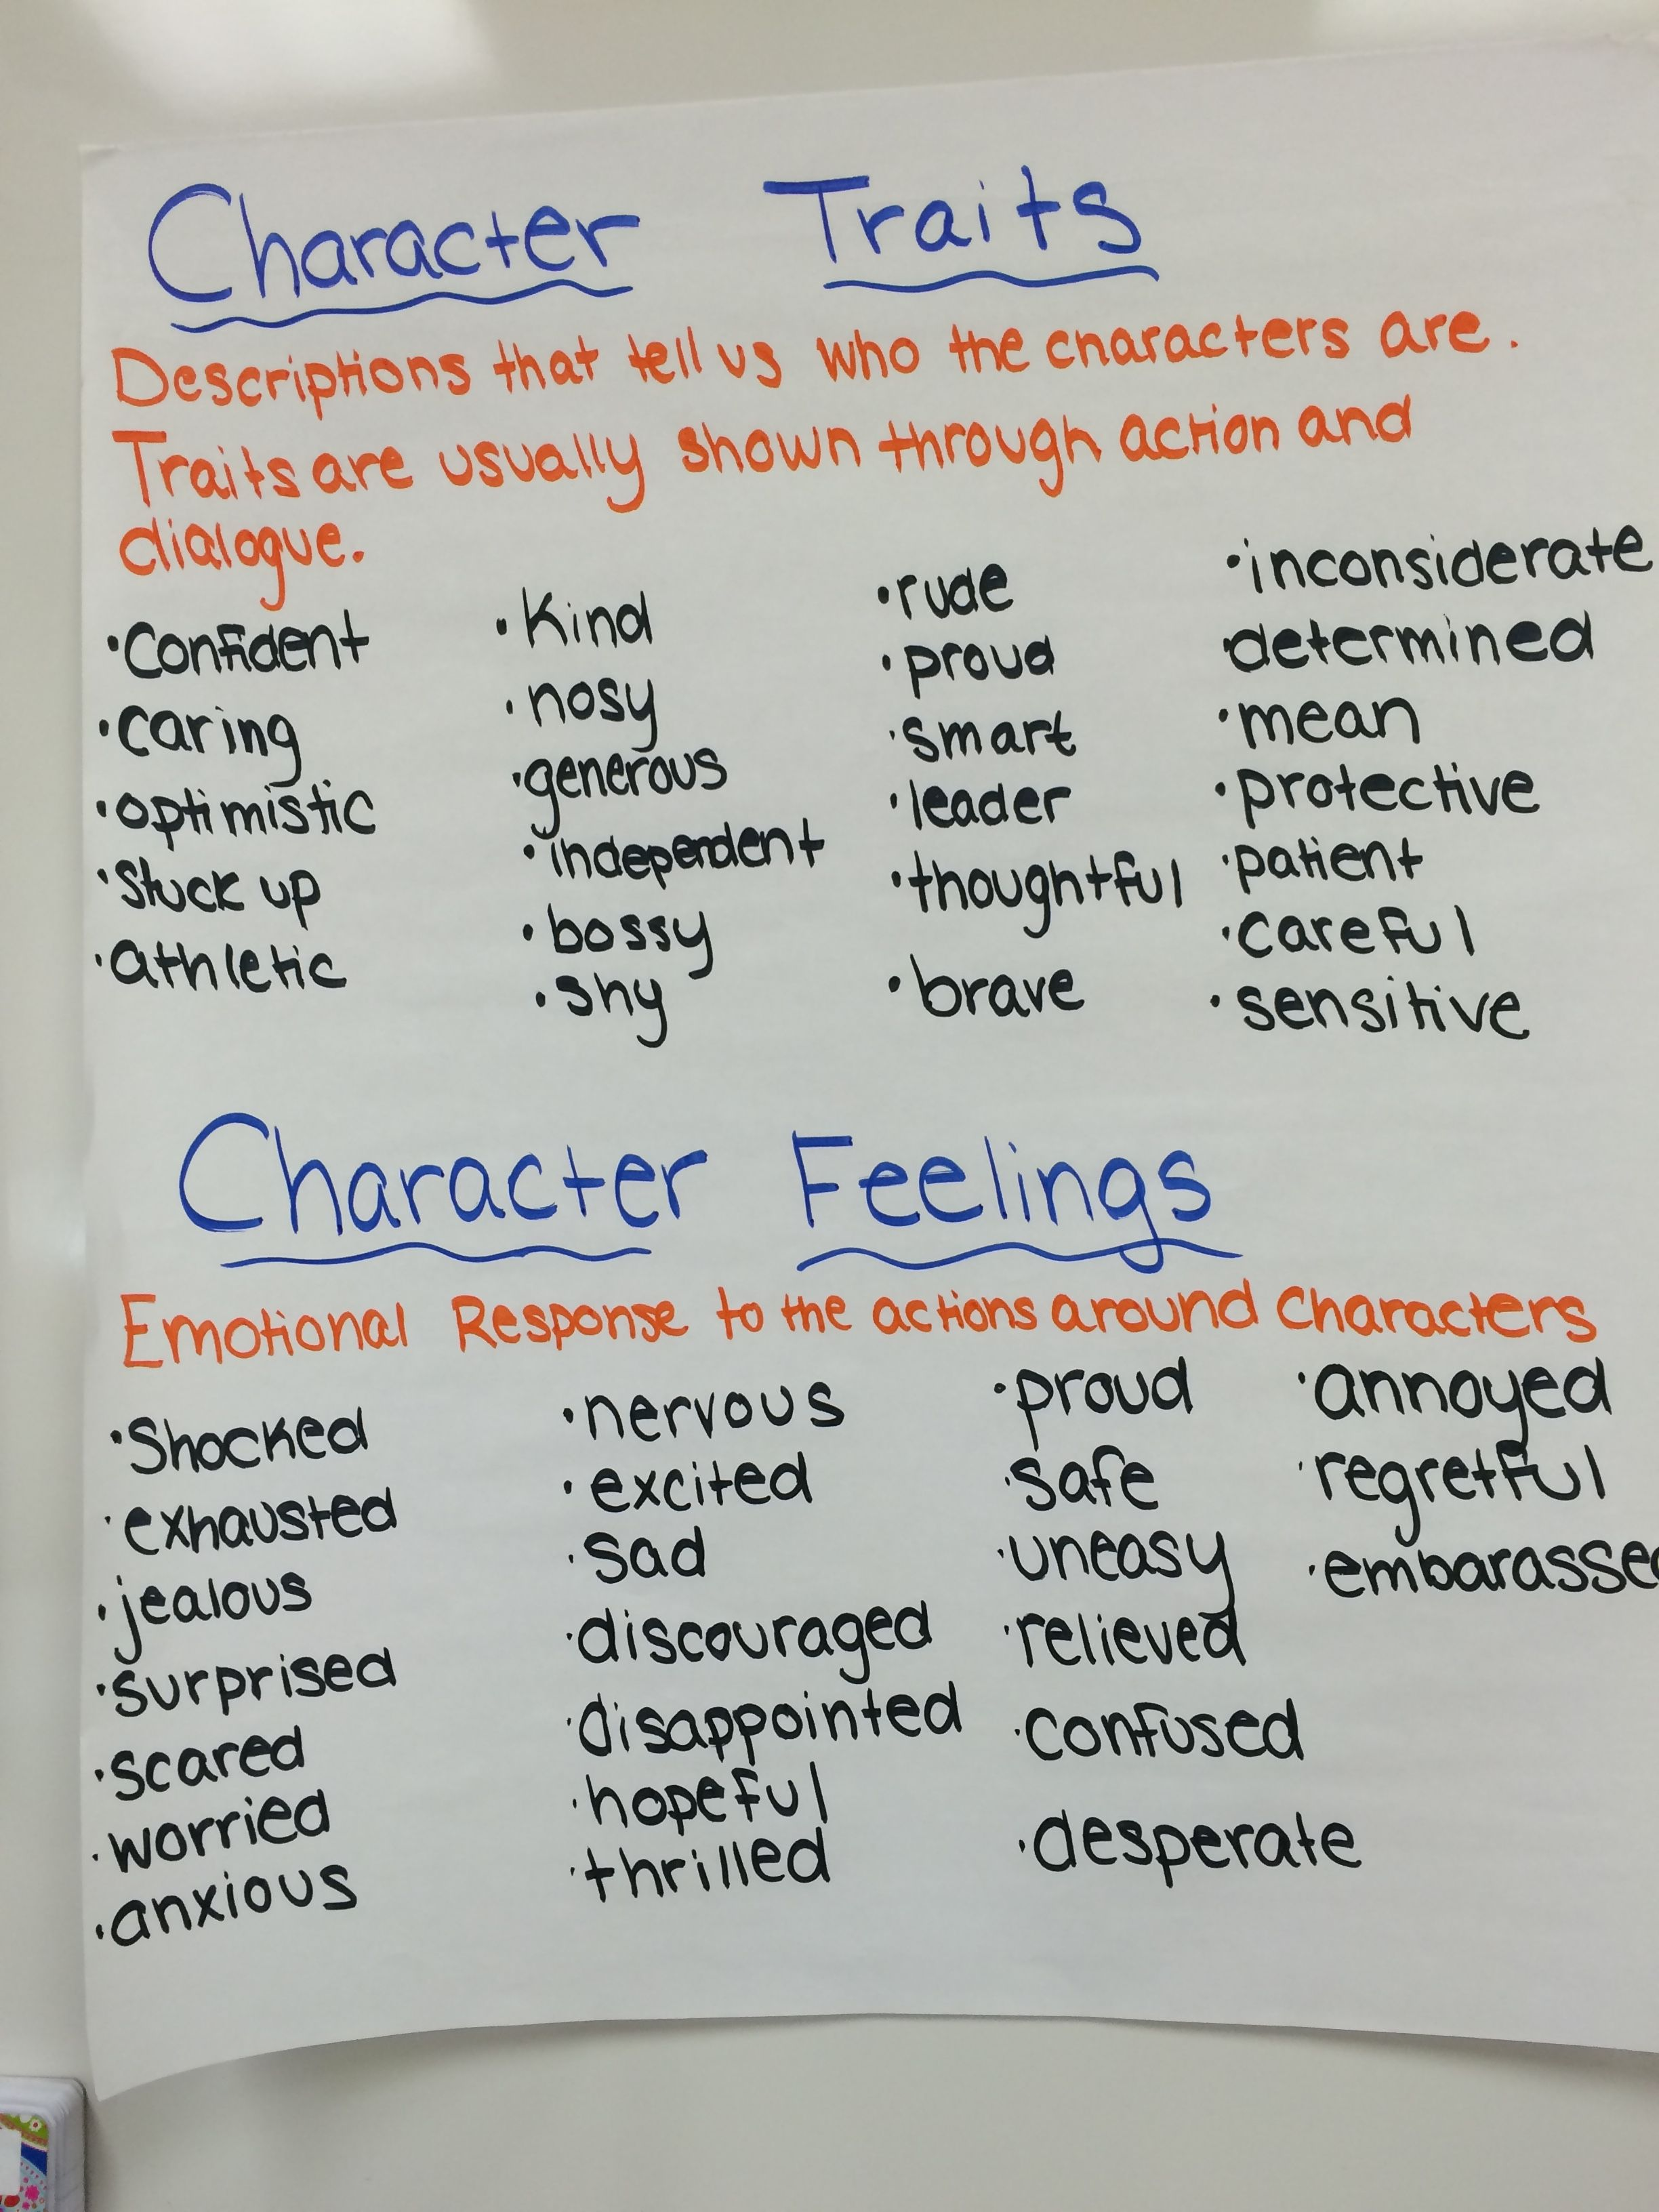 Character Traits Vs Feelings